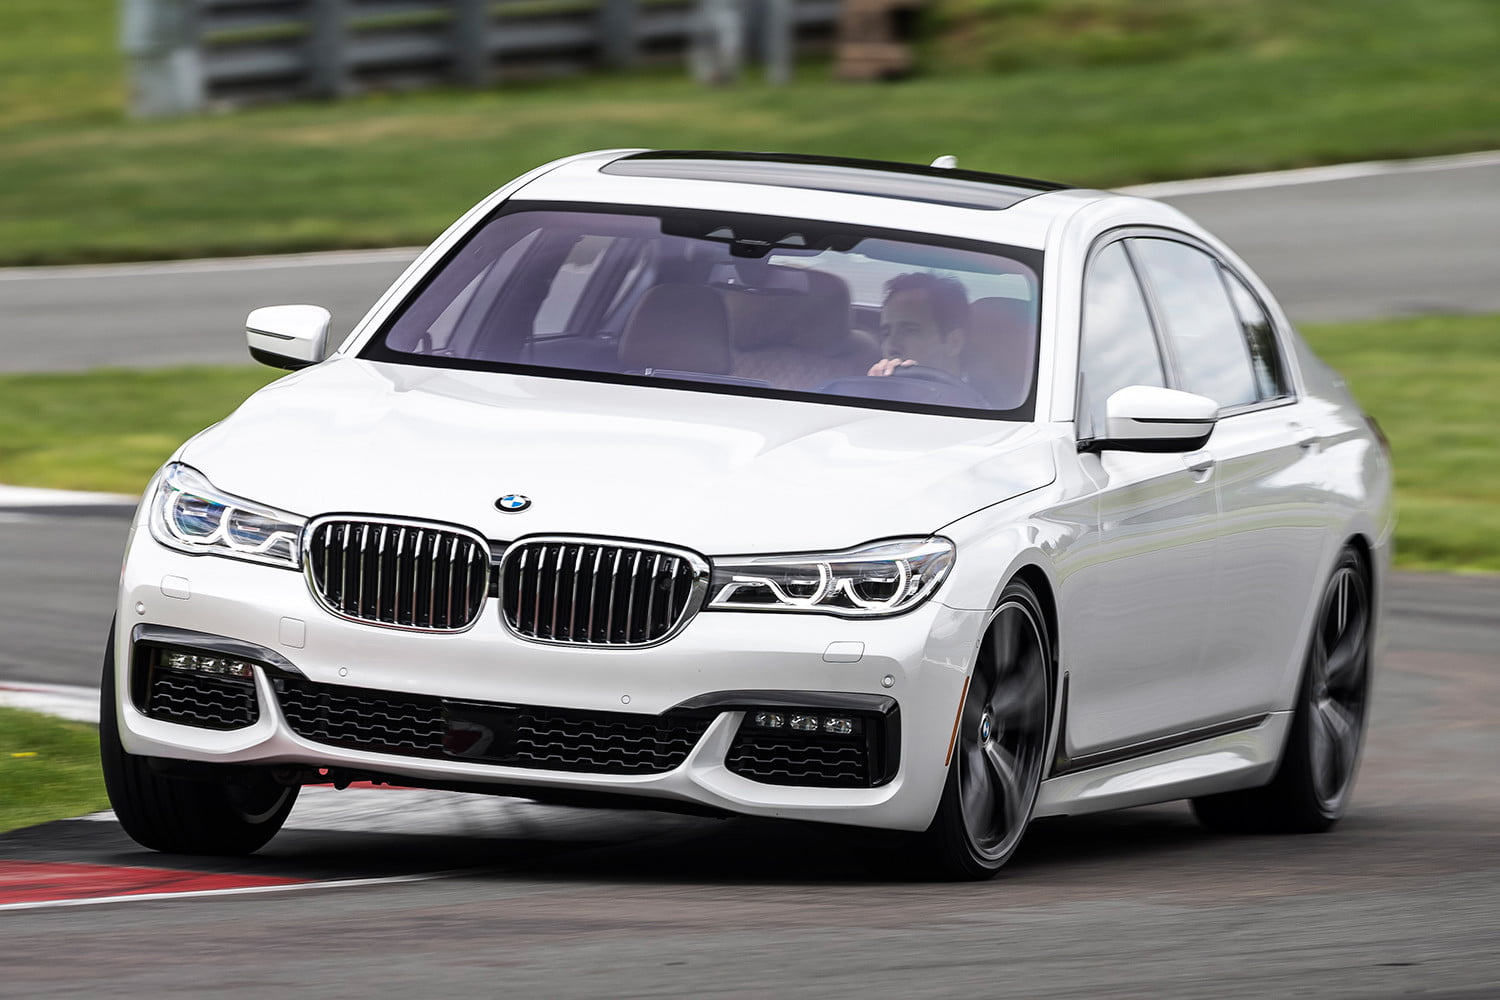 2016 bmw 7 series first drive review digital trends. Black Bedroom Furniture Sets. Home Design Ideas